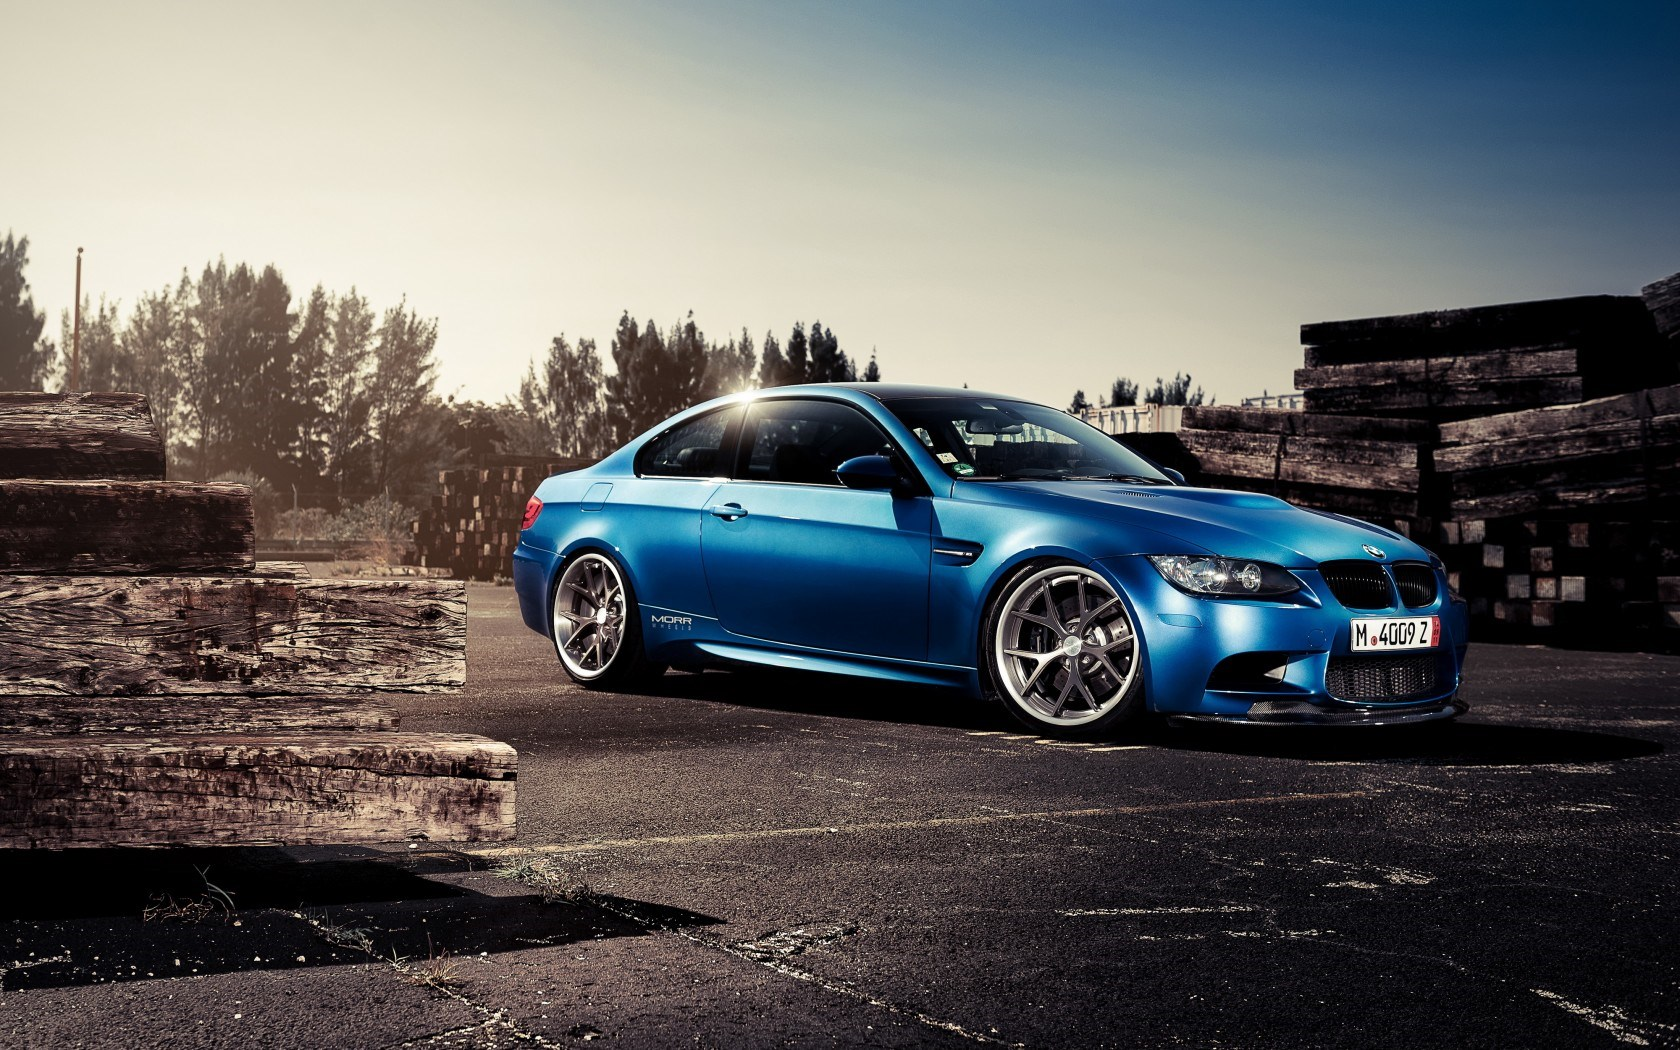 bmw m3 wallpaper and background image | 1680x1050 | id:444444